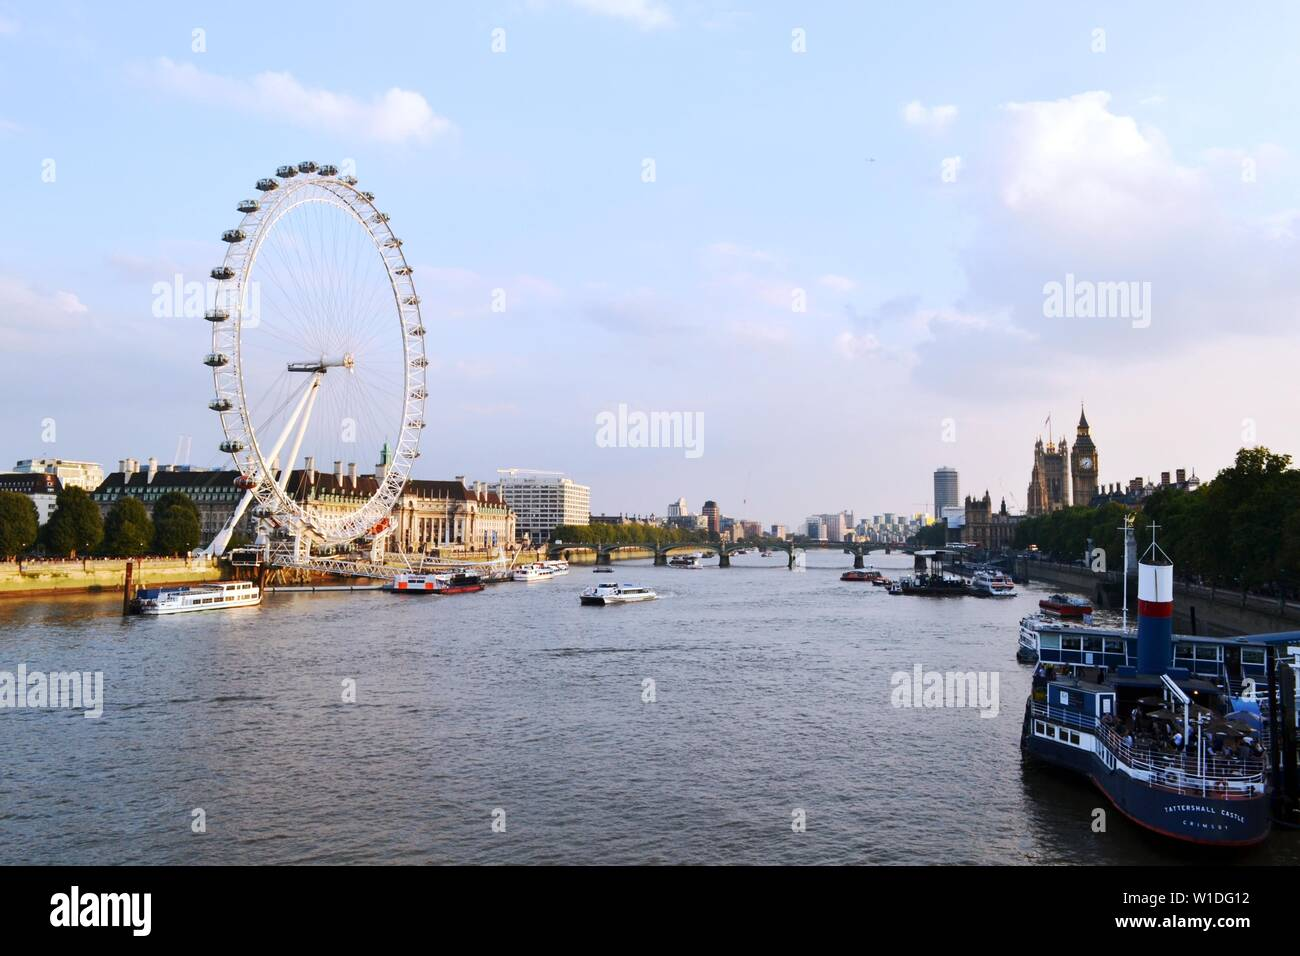 London/UK - September 7, 2014: Panoramic View to London Eye, Thames river, Houses of Parliament, Westminster bridge, Big Ben at sunset. Stock Photo